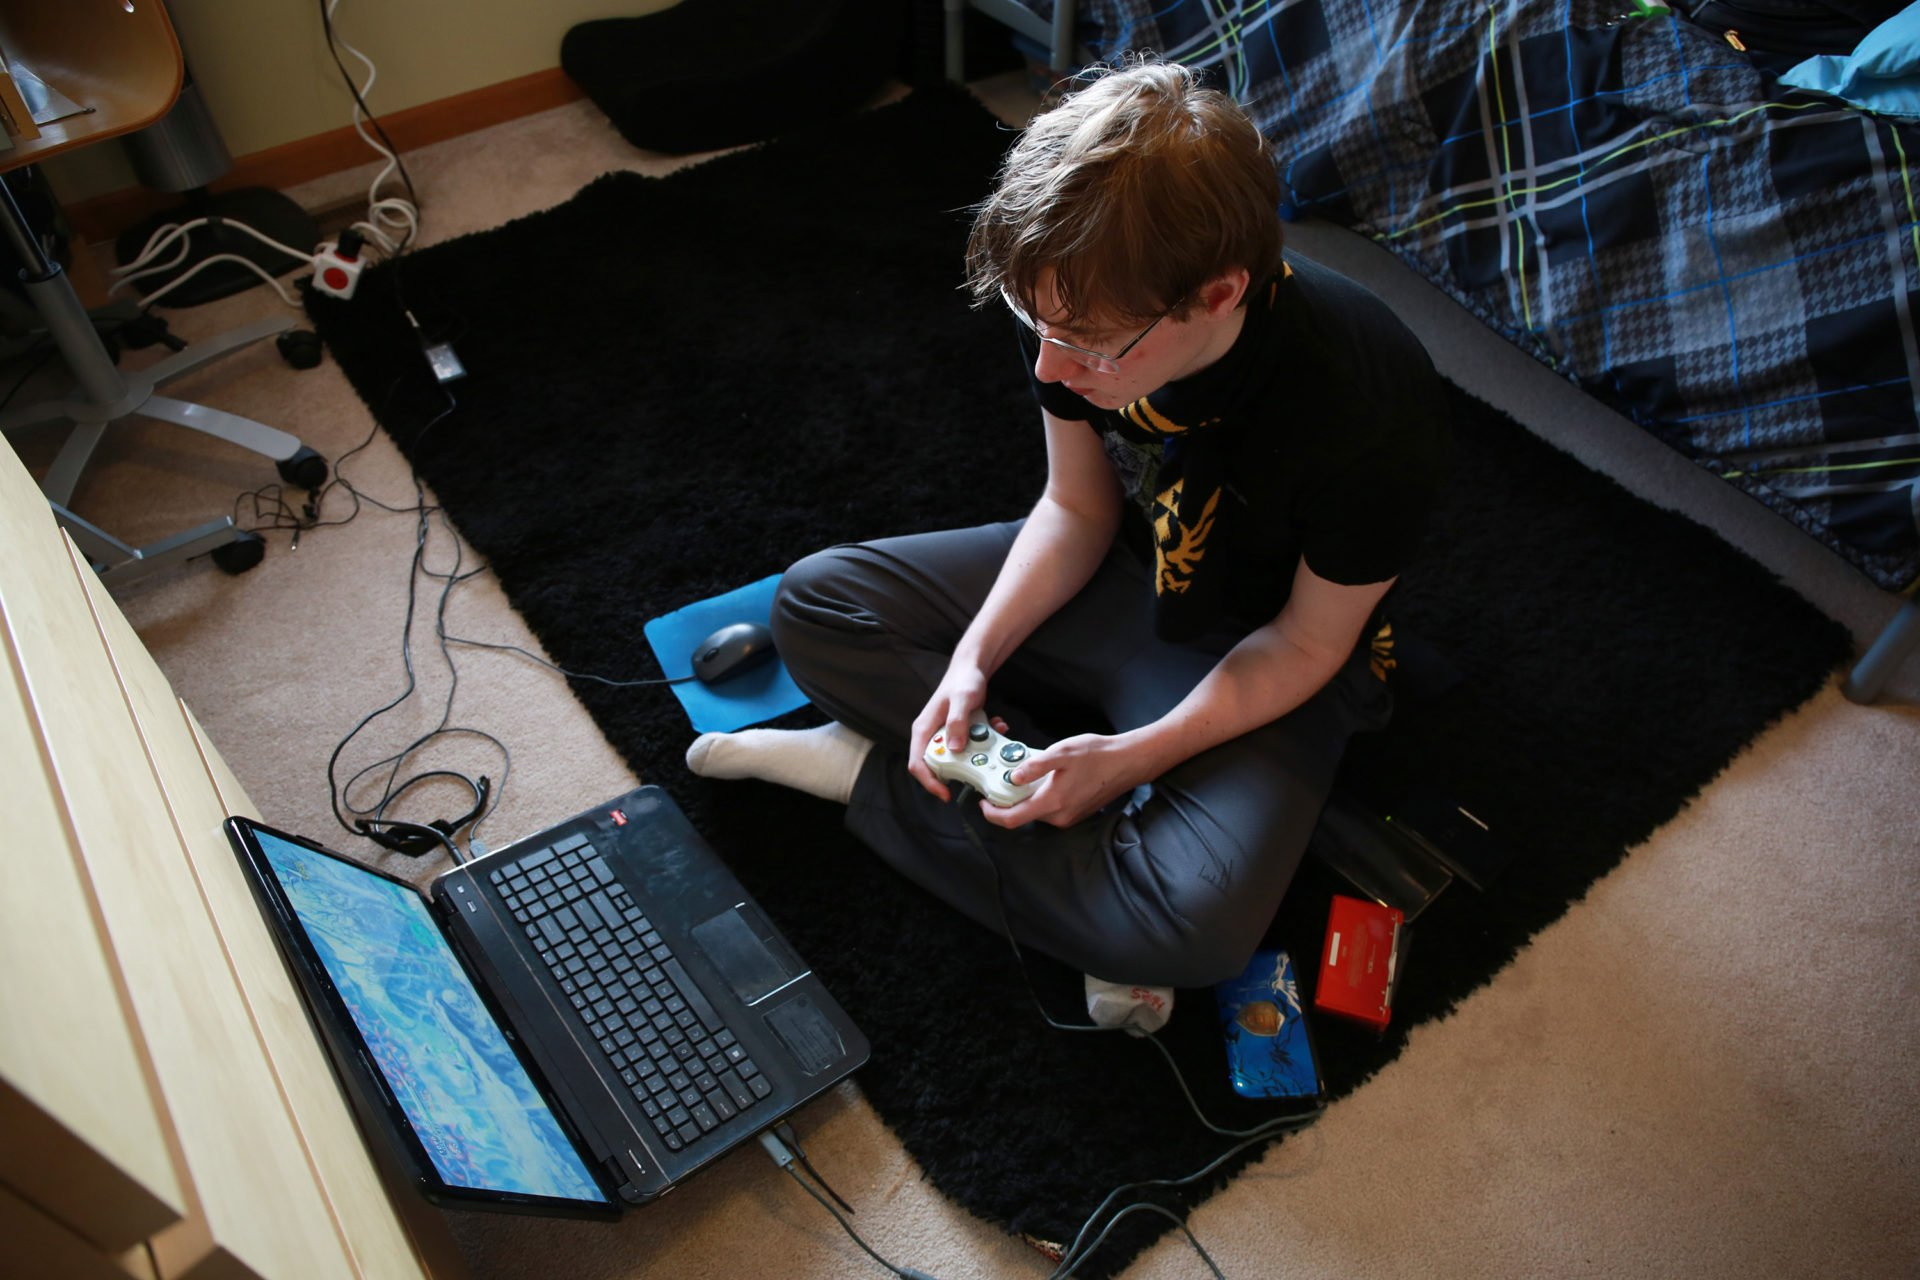 thesis game addiction A great summary of gaming addiction statistics, facts, articles, and research findings from published journal articles the video game addiction test for parents.